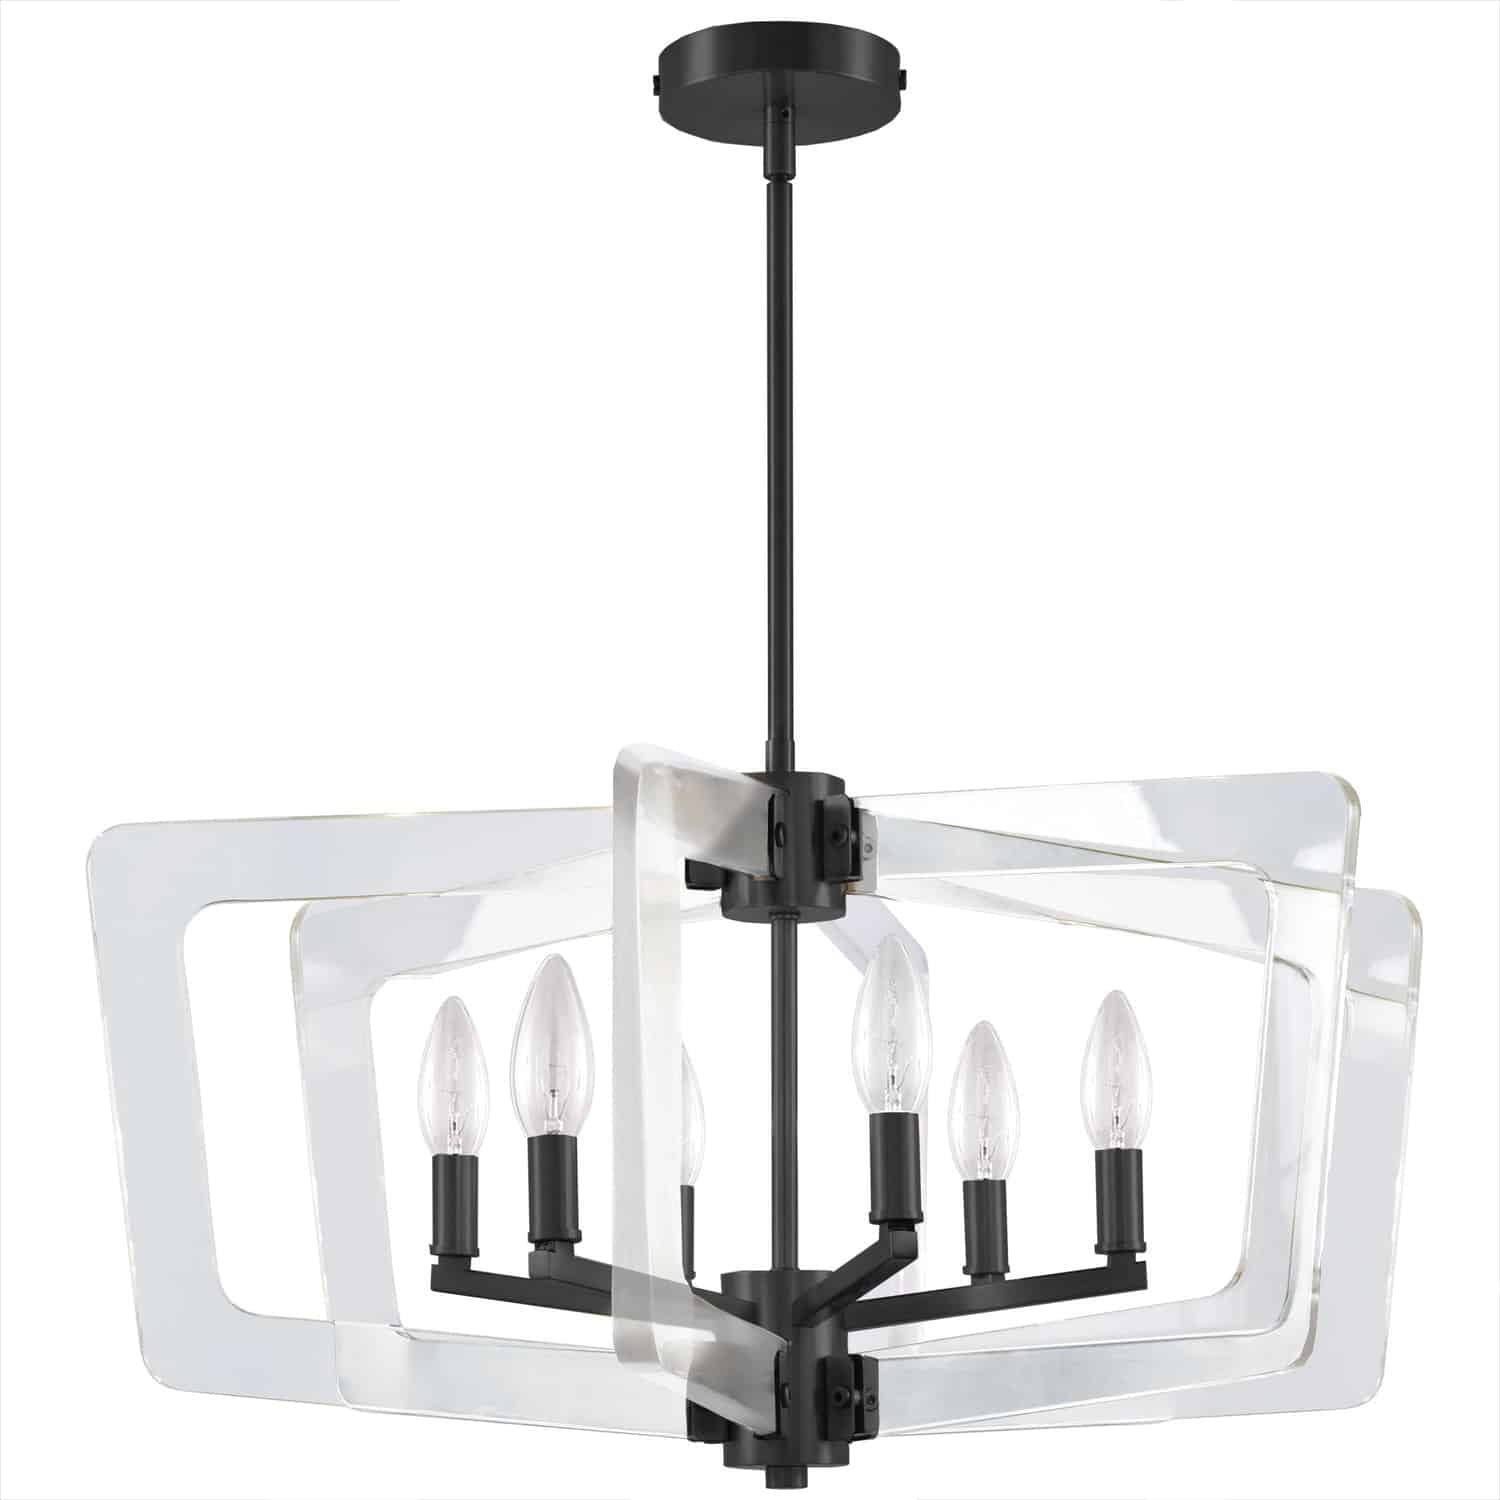 6 Light Incandescent Chandelier, Matte Black with Acrylic Arms